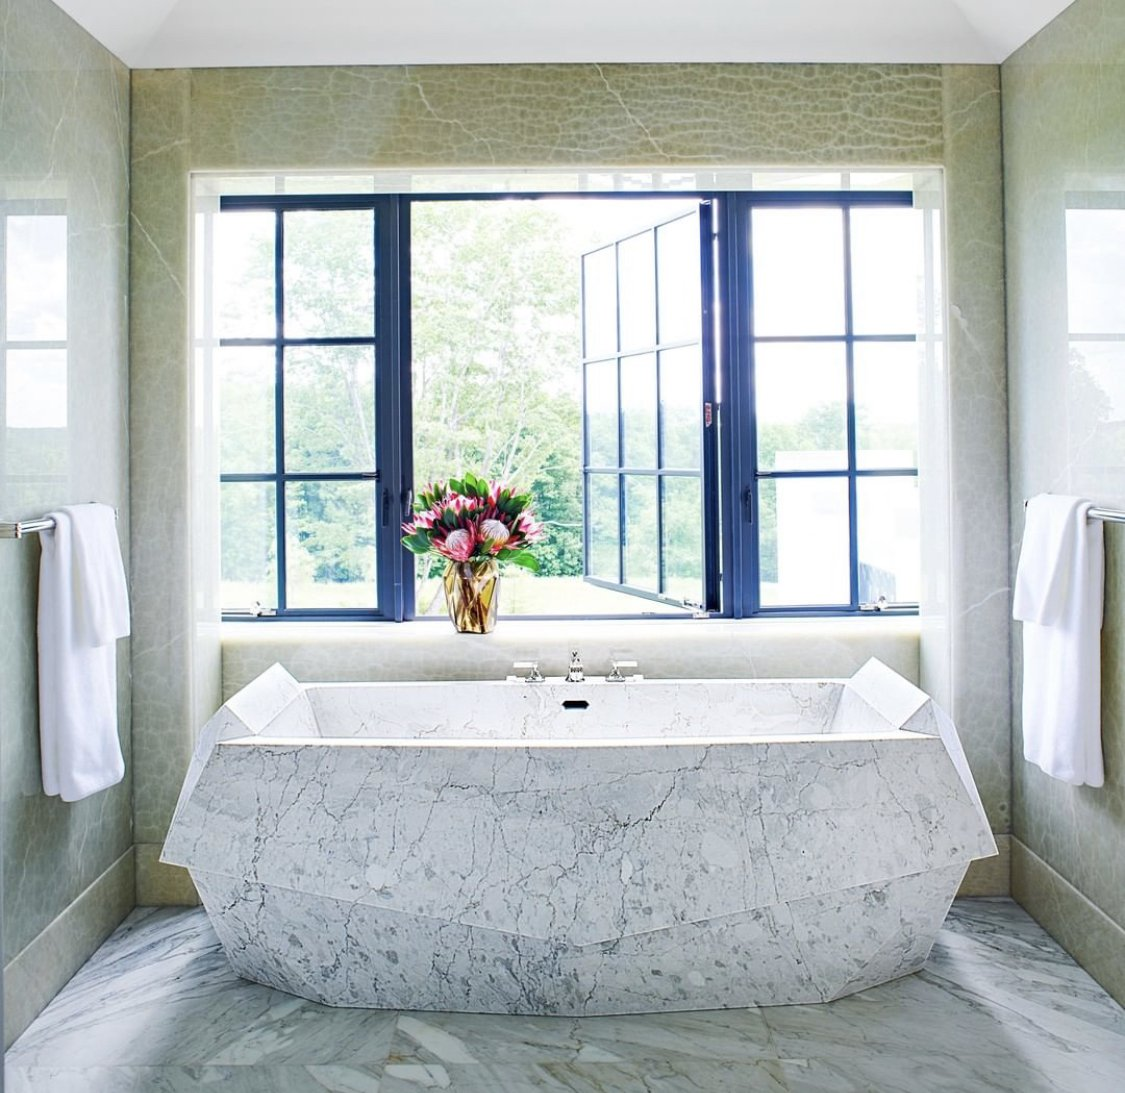 Custom-made bathtub carved from a single piece of Calacatta marble 😍  #LA #hiltonhyland #luxuryhomes #milliondollarlisting #residential #realestateagent #zillow #luxuryrealestate #architecture #views #l4l #followback #instafollow #teamfollowback #picoftheday #iamyouragent